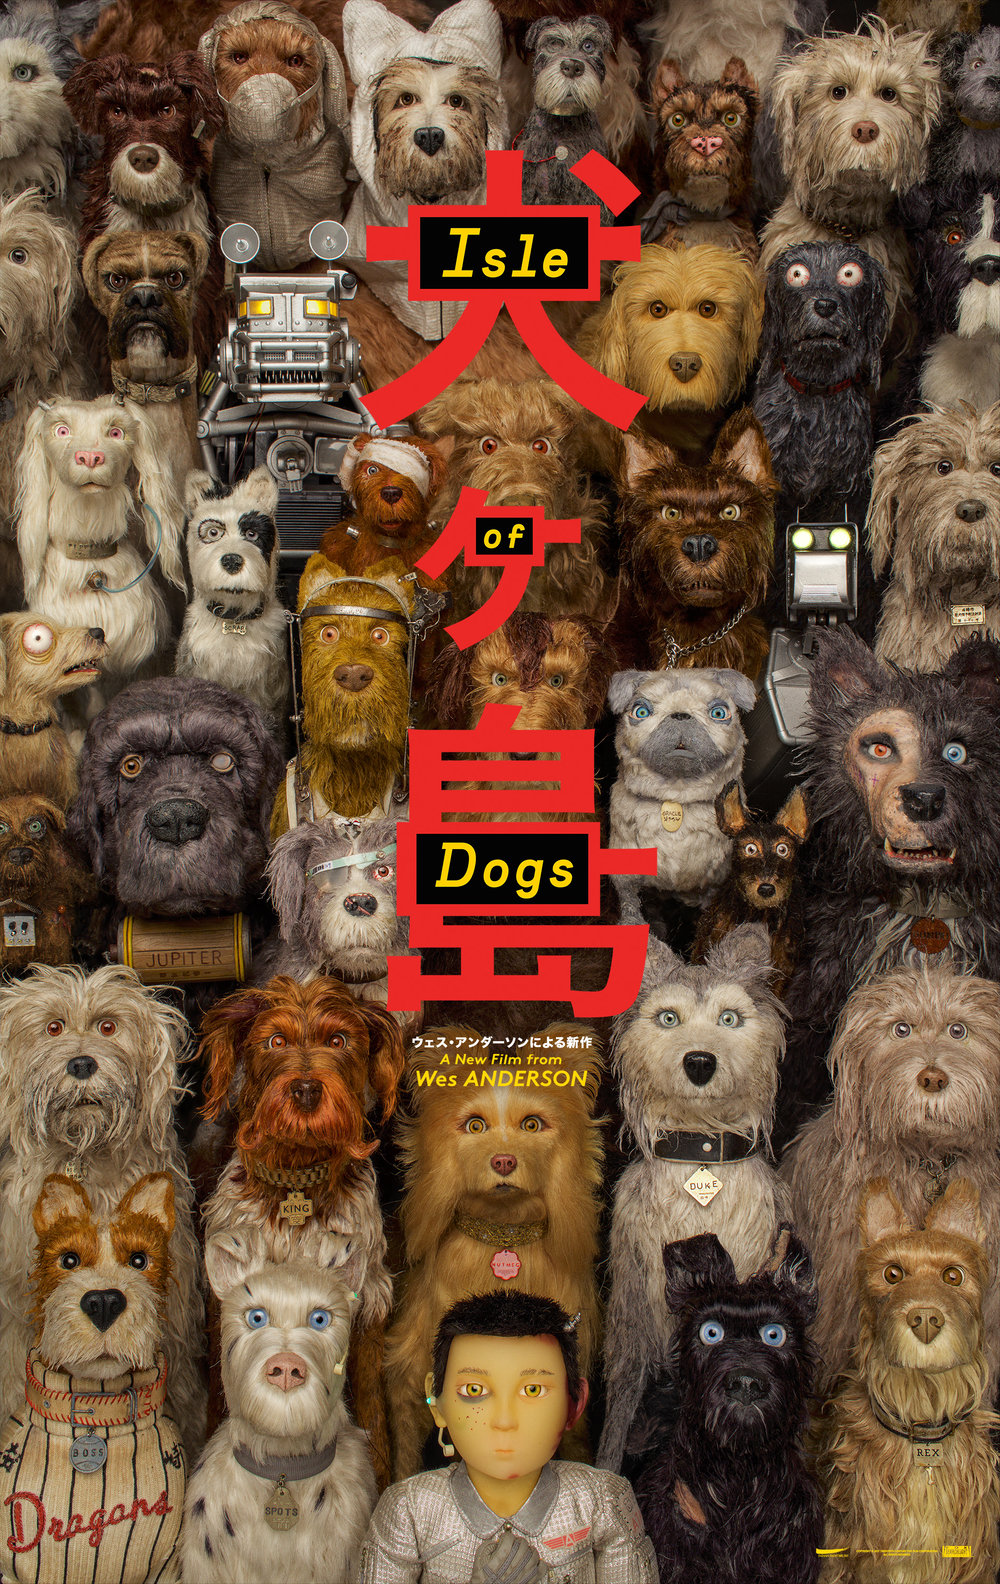 Isle of Dogs (2018) - Wes Anderson - It's hard to have anything against a movie that took over 3 years to make. When you find out that individual artists worked for a week and only got 5-10 seconds of the film recorded, you can't hate that movie. Just the production and execution of this film deserve all the accolades possible. On top of that dogs just stare into the camera constantly. What's more enjoyable than a puppet dog with a blank stare.If you can't tell, I'm down with the dogs. As one of those (apparently horrible) Wes Anderson fans that love Fantastic Mr. Fox, I will say it's not on that level, but nevertheless, still an incredible film. The movie may possibly be the cutest movie ever made. You heard me right, (insert cute film). I loved the dogs, the voices, the story, and though it was meandering (that's the nice way of saying it) I still was along for the ride.If you were thinking about not seeing this film. I'll ask you to think again. If you were thinking about not seeing this film AND you love dogs. Then stop whatever the fuck you're doing and go. If you can look past some of the cultural issues that may or may not exist in this film, then you'll get to the real heart of Isle of Dogs, which feels genuine. Aside from the obvious subject of the pure love between (wo)man and their best friend, the film can cut deeper and really speak to connections between souls as well as a subtle look at the climate of society.What's reel: The dogs. The stop motion and models of the dogs keep you engaged the entire time.What's rotten: The plot sometimes drags and the whole westernized look at Japan can get in your head every now and then during the film.Reel Rotten Rating: Fresh. Fresh as hell. Worth seeing in theaters.